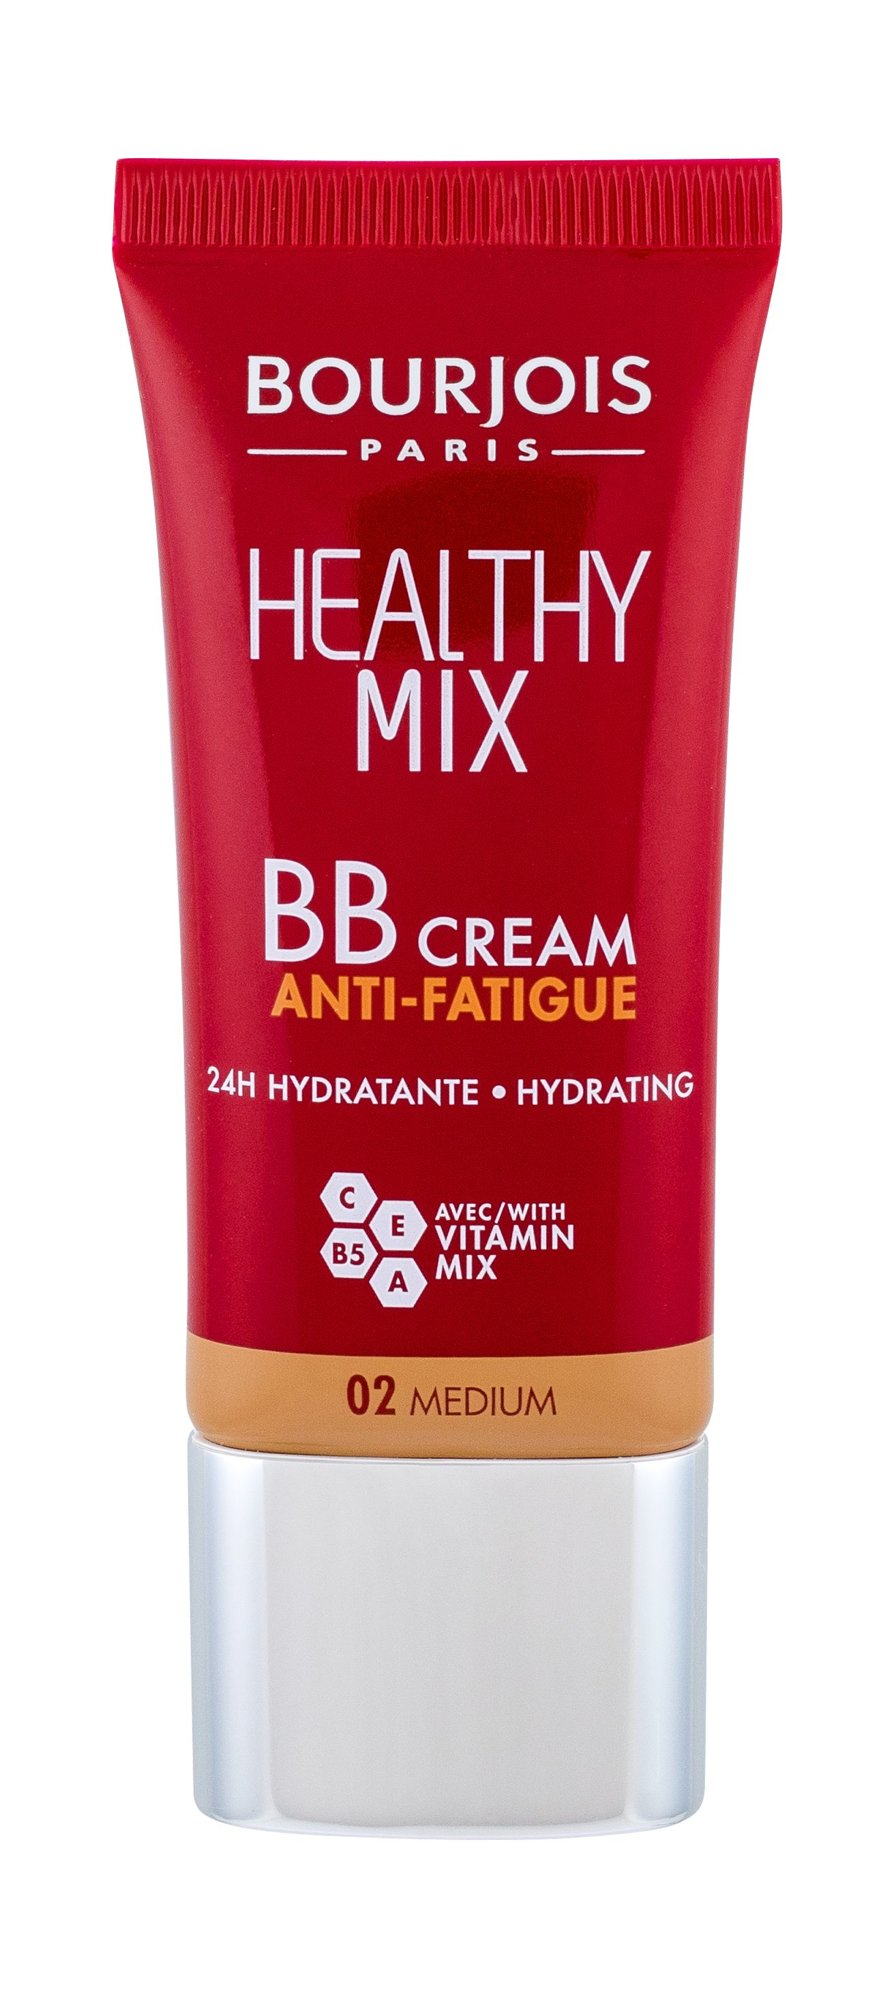 BOURJOIS Paris Healthy Mix BB Cream 30ml 02 Medium